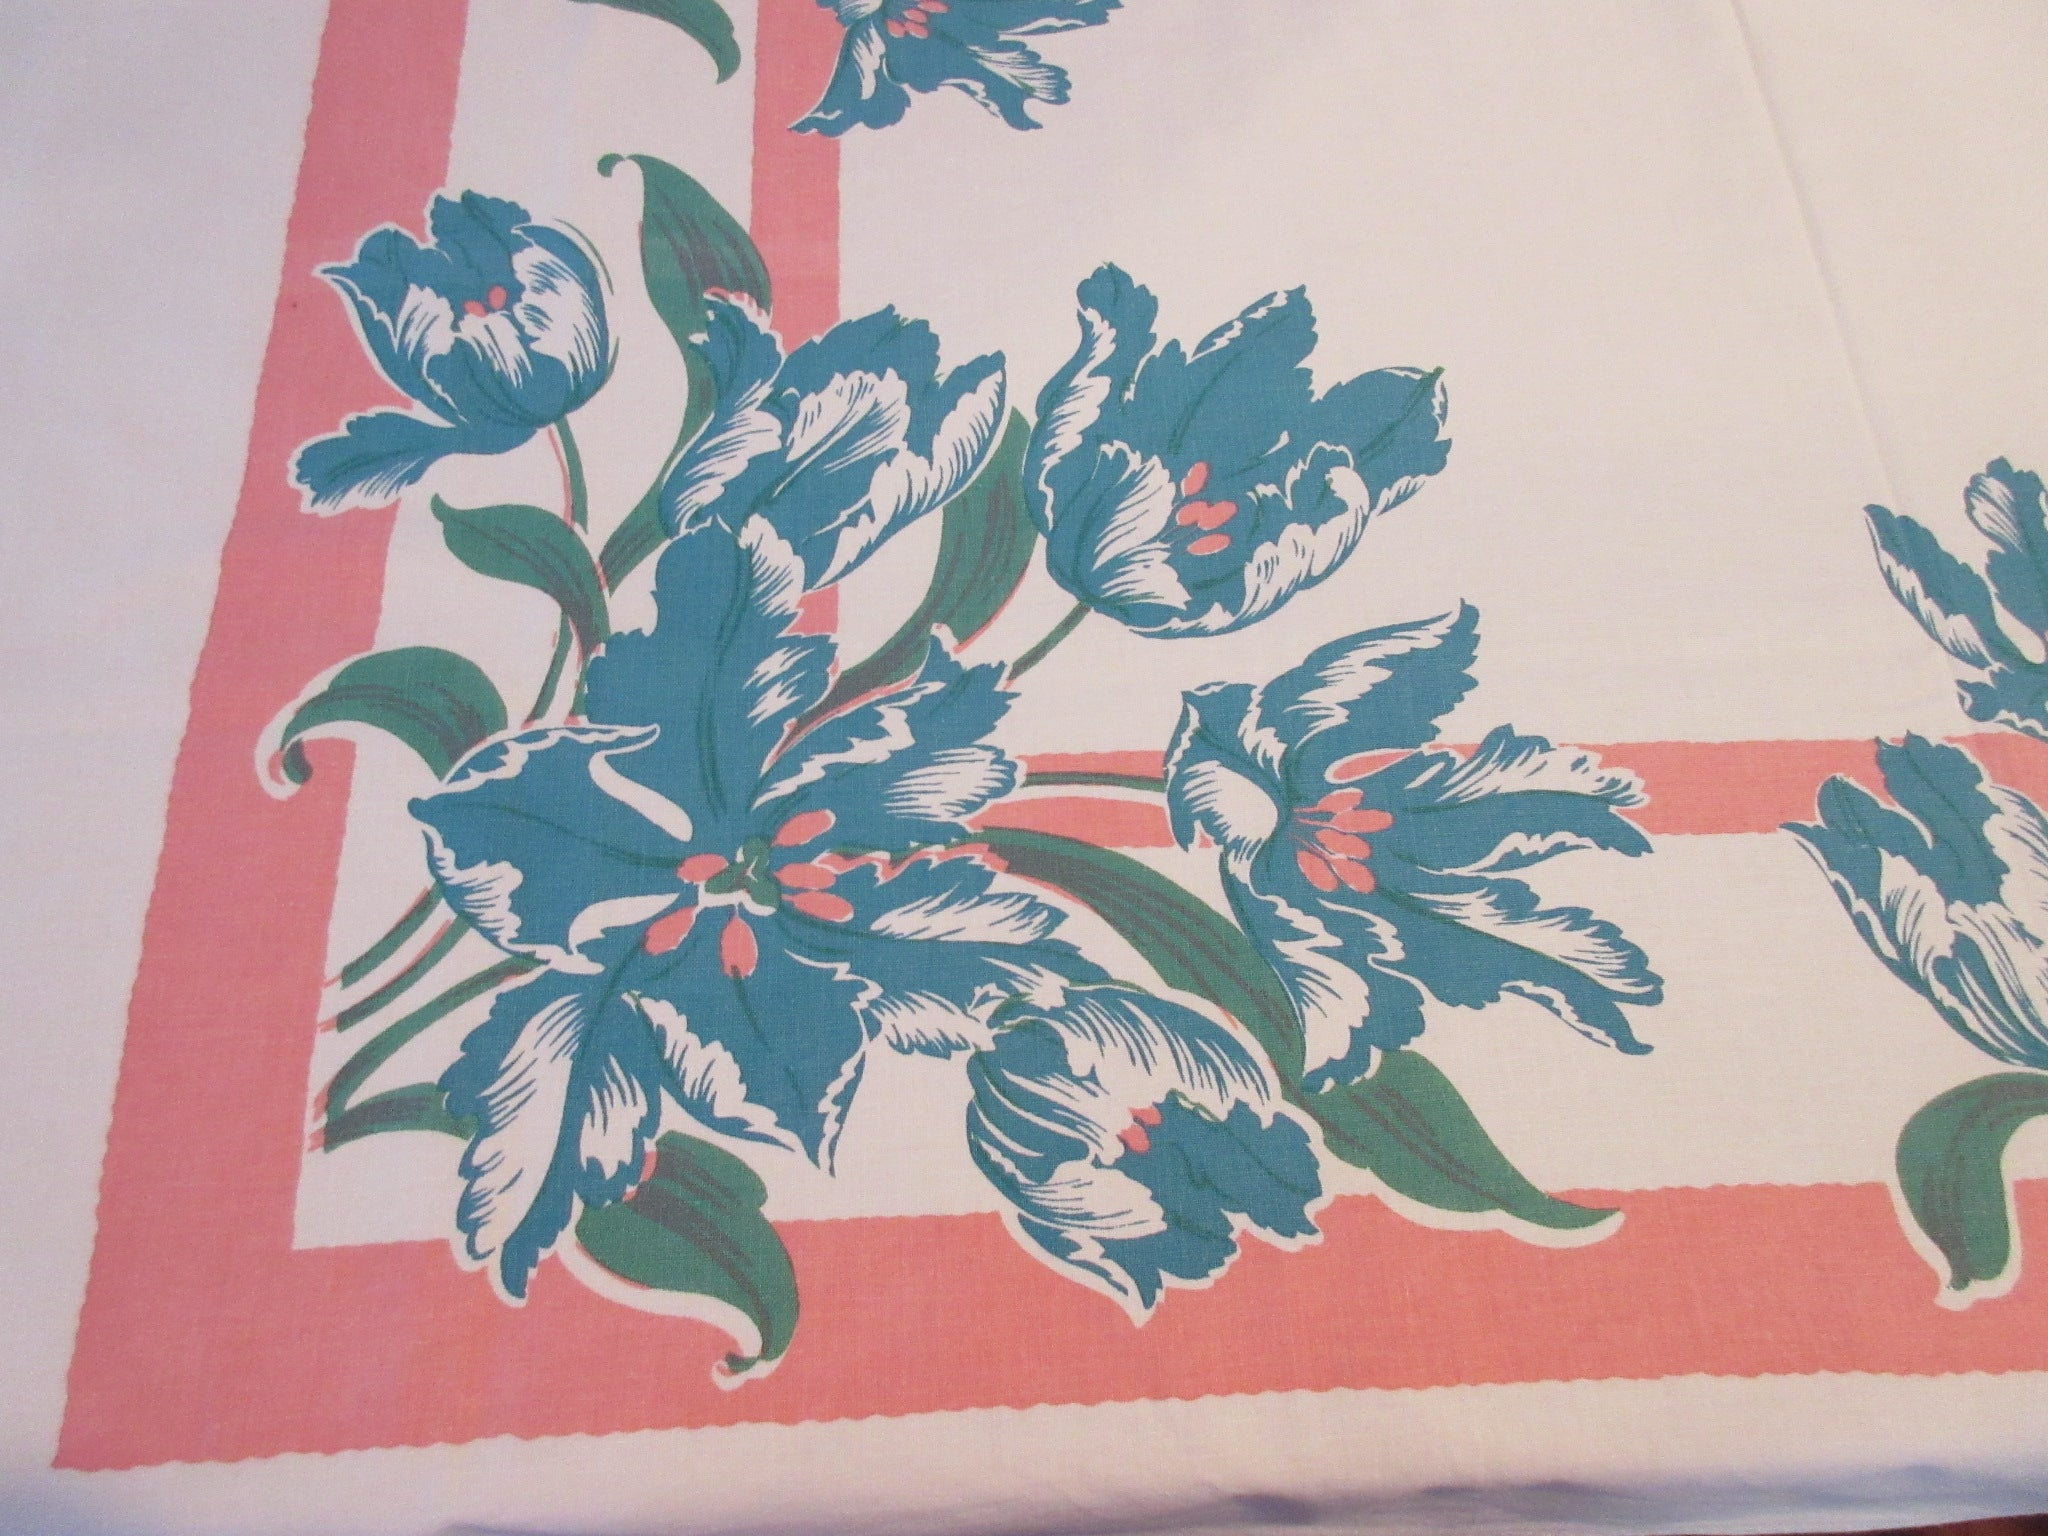 Teal Tulips on Pink Floral Vintage Printed Tablecloth (51 X 47)